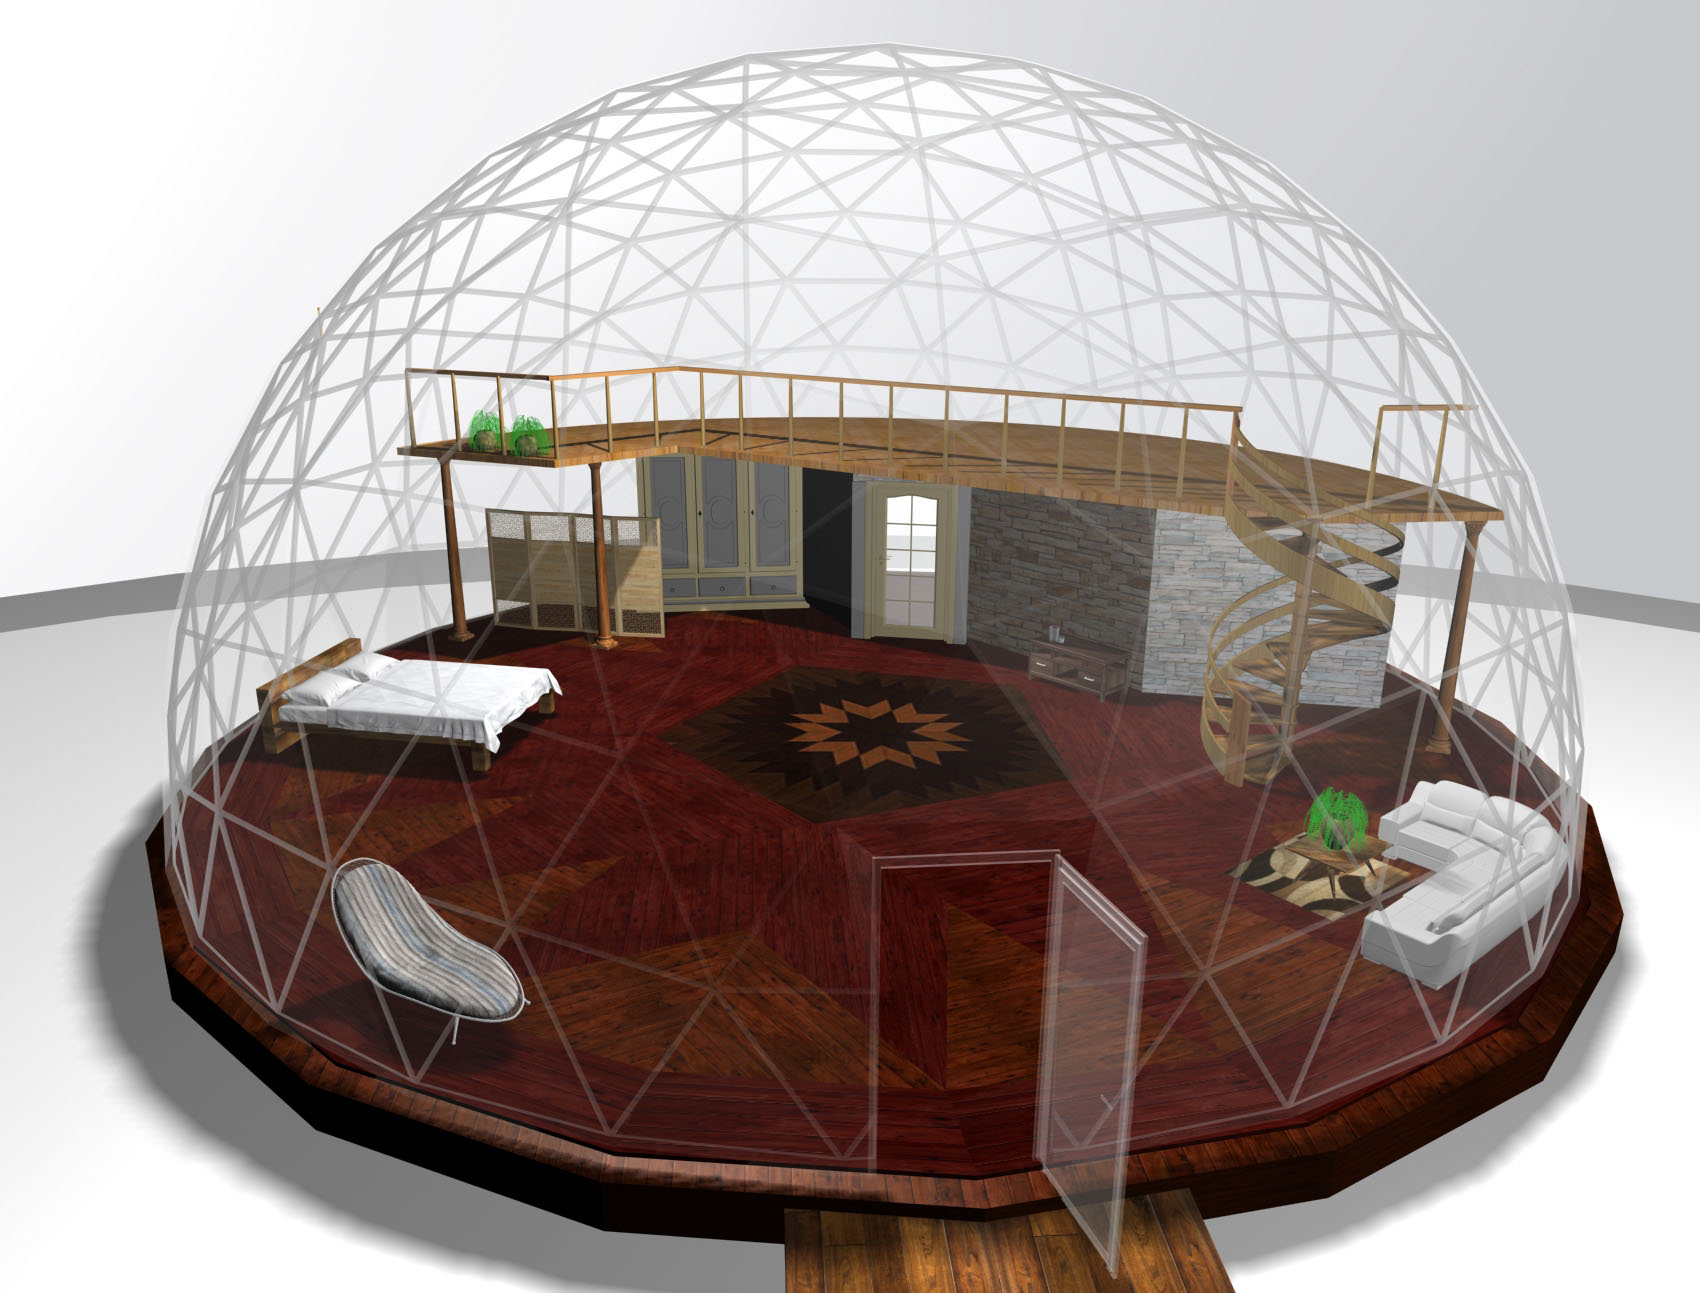 44' dome with king size bed